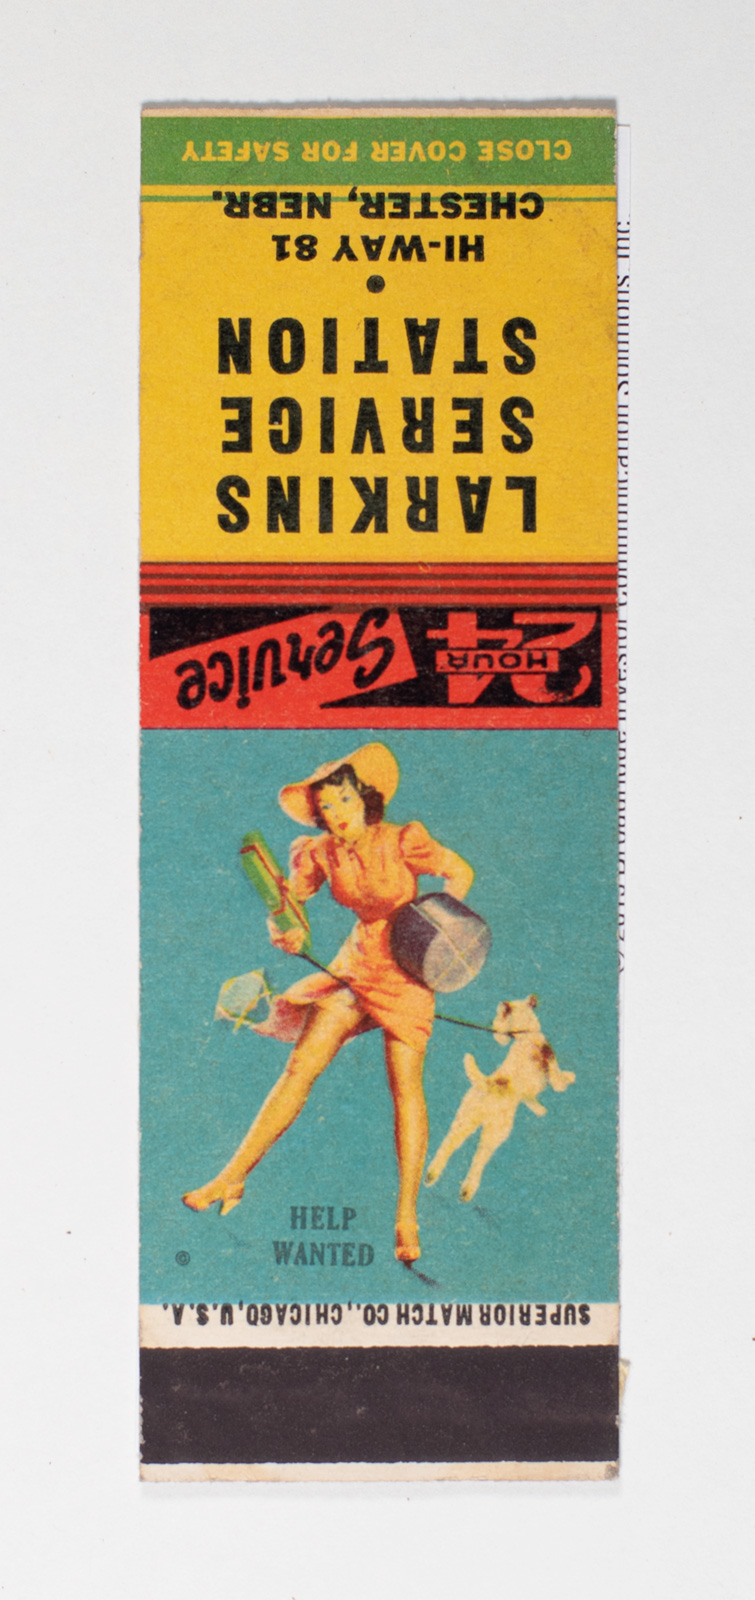 Larking Service Station Matchbook Cover Image